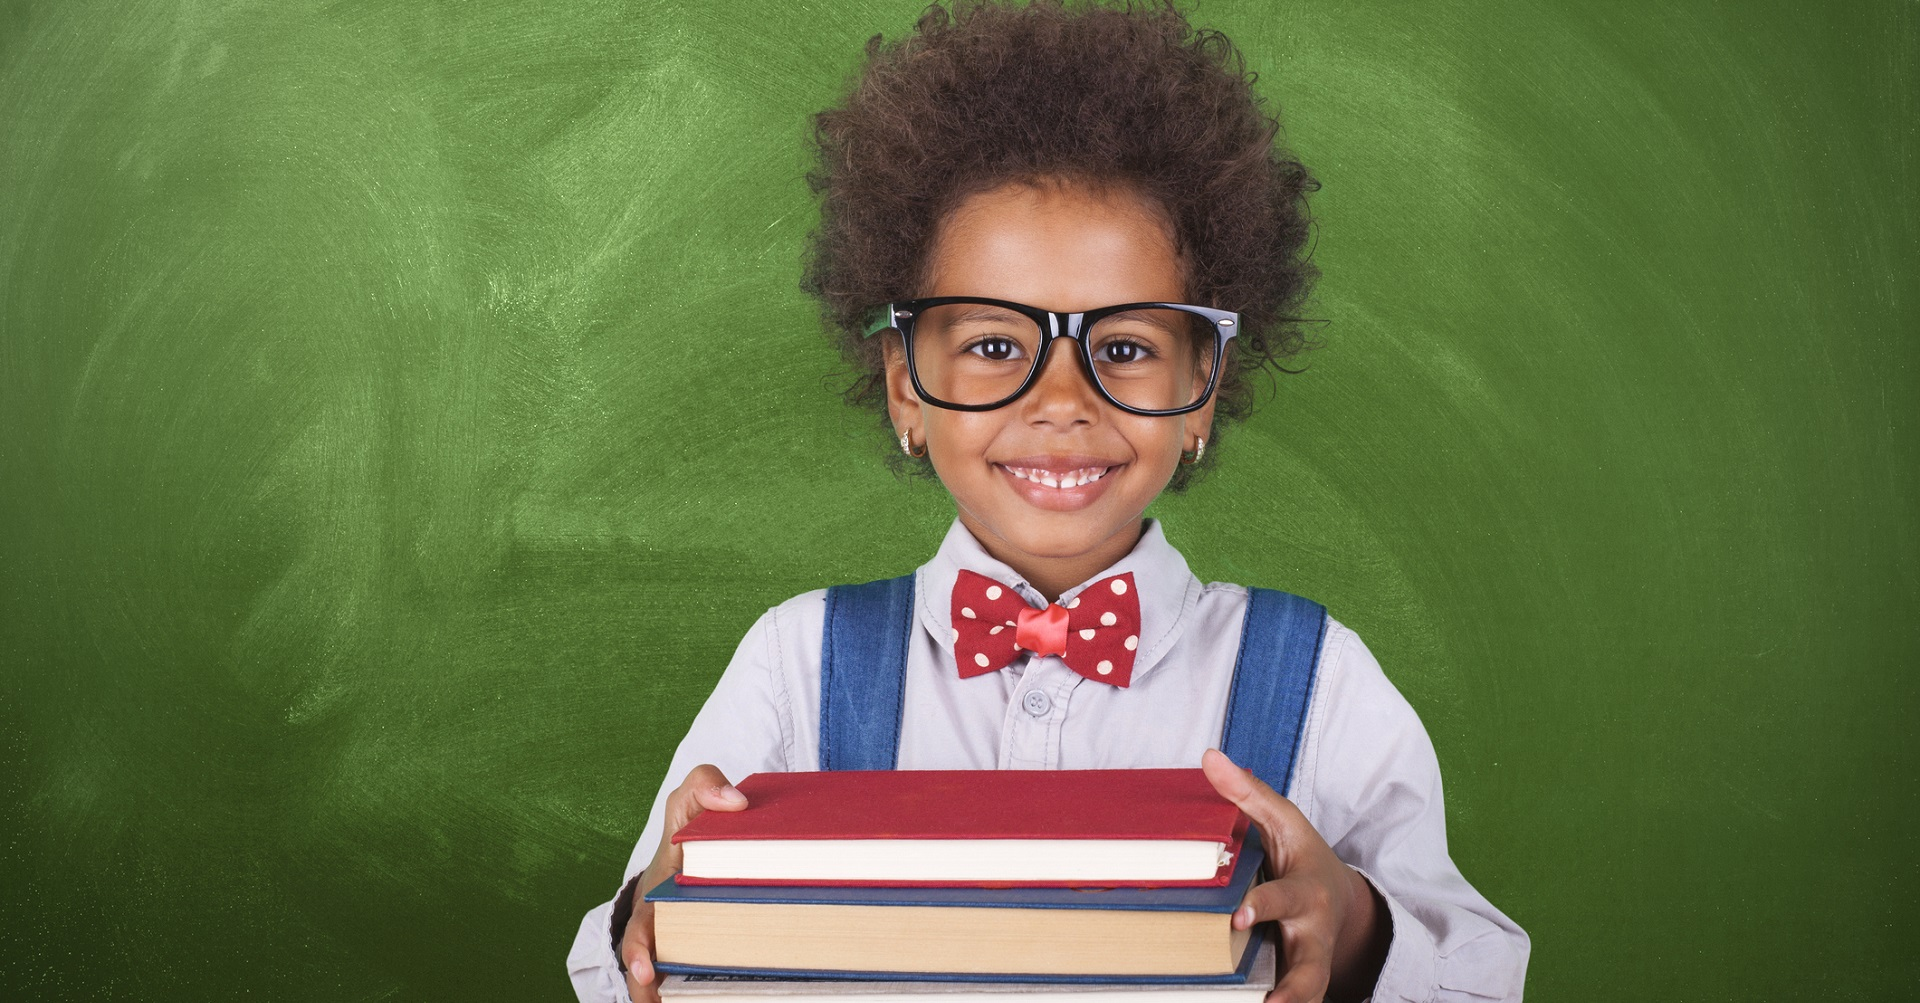 child with glasses holding school books